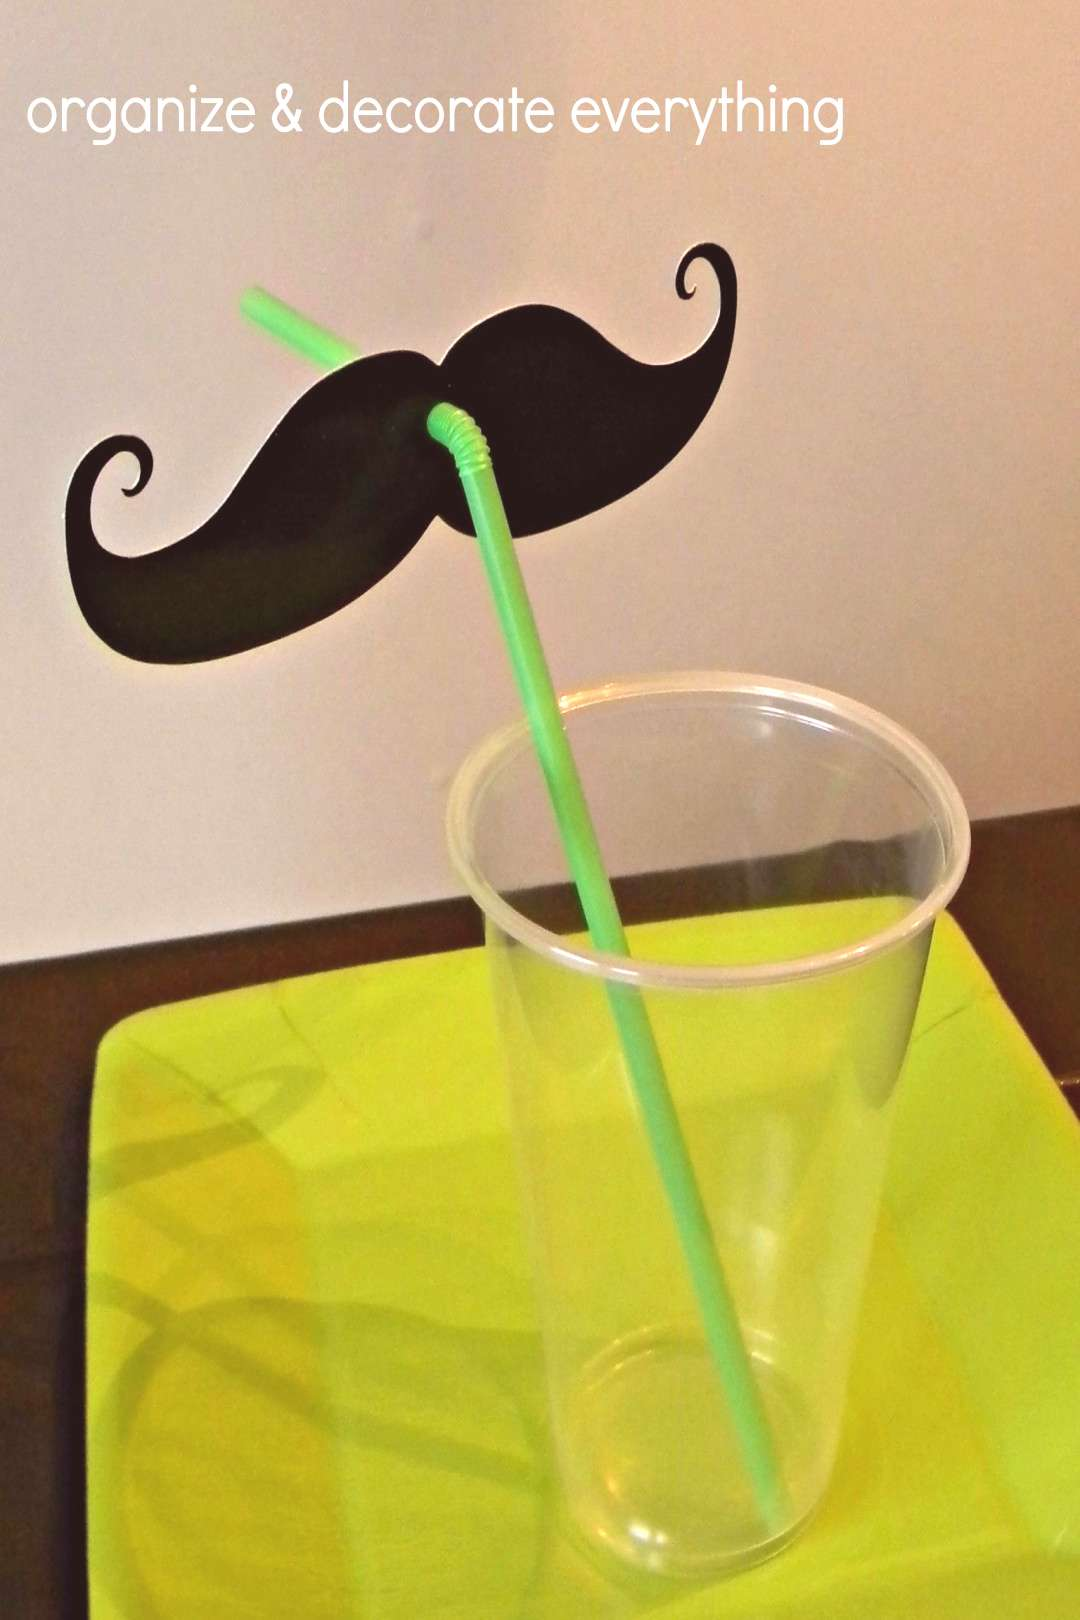 Mustache Party Ideas   Simple Mustache Party Ideas - Organize and Decorate Everything